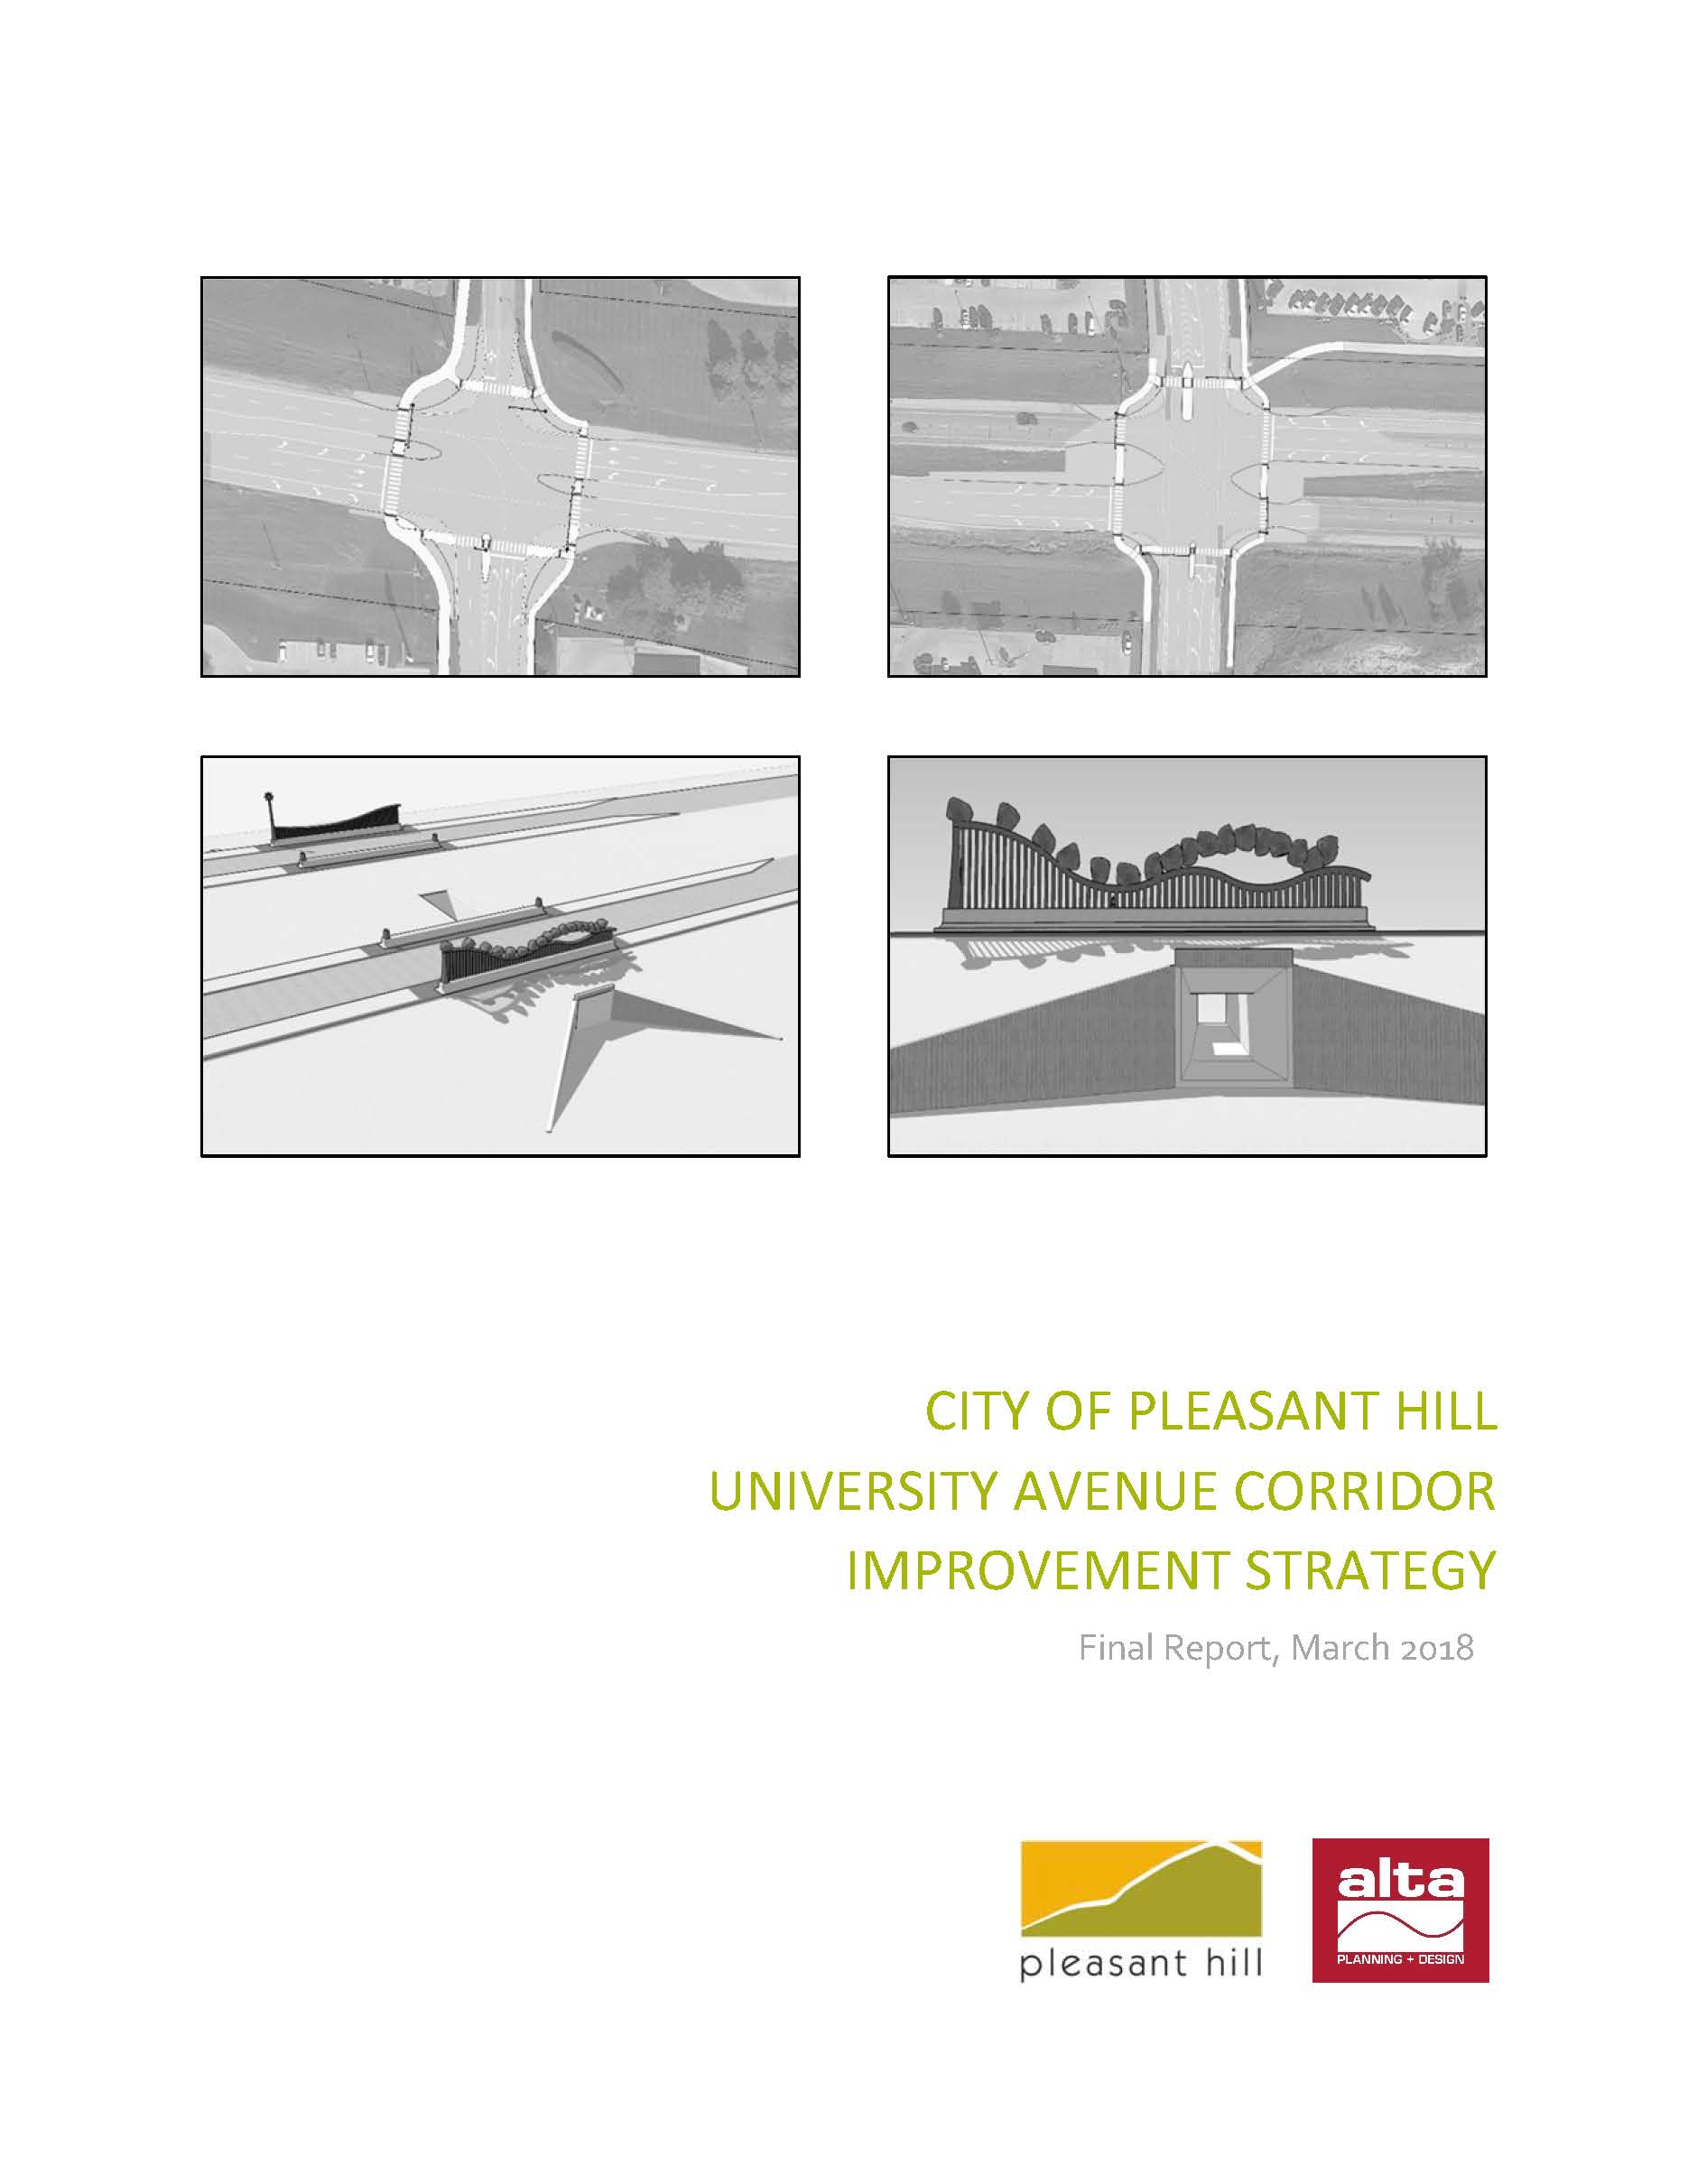 Pleasant Hill University Avenue Corridor Improvement Strategy